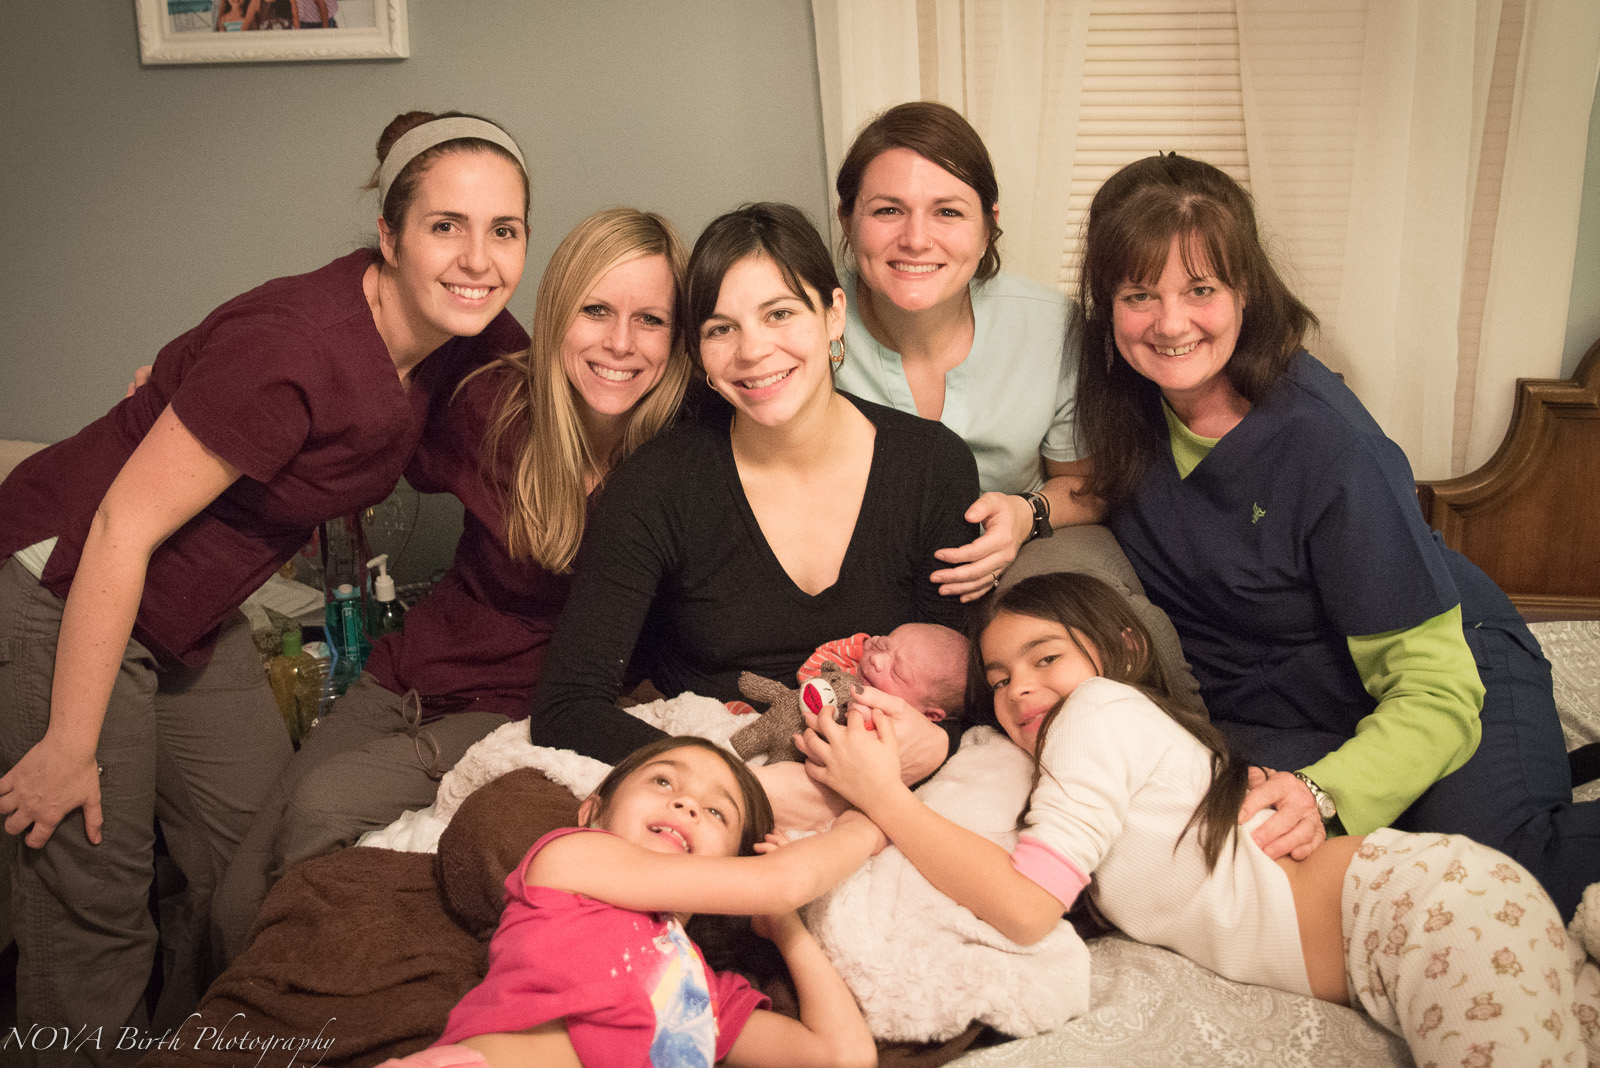 This was yet another special birth! Heather Munoz, CPM (center), was surrounded by best friends and birth workers as she gave birth to her fifth child.  From left to right: Celesta Bargatze, CPM, Tara Garner (doula, birth photographer), Elise Buckner (apprenticing midwife), and Mary Anne Richardson, CPM. All of the midwives in this photograph have been trained by Mary Anne Richardson. Thanks to her, we have been able to gain the necessary skills to attend women in birth.